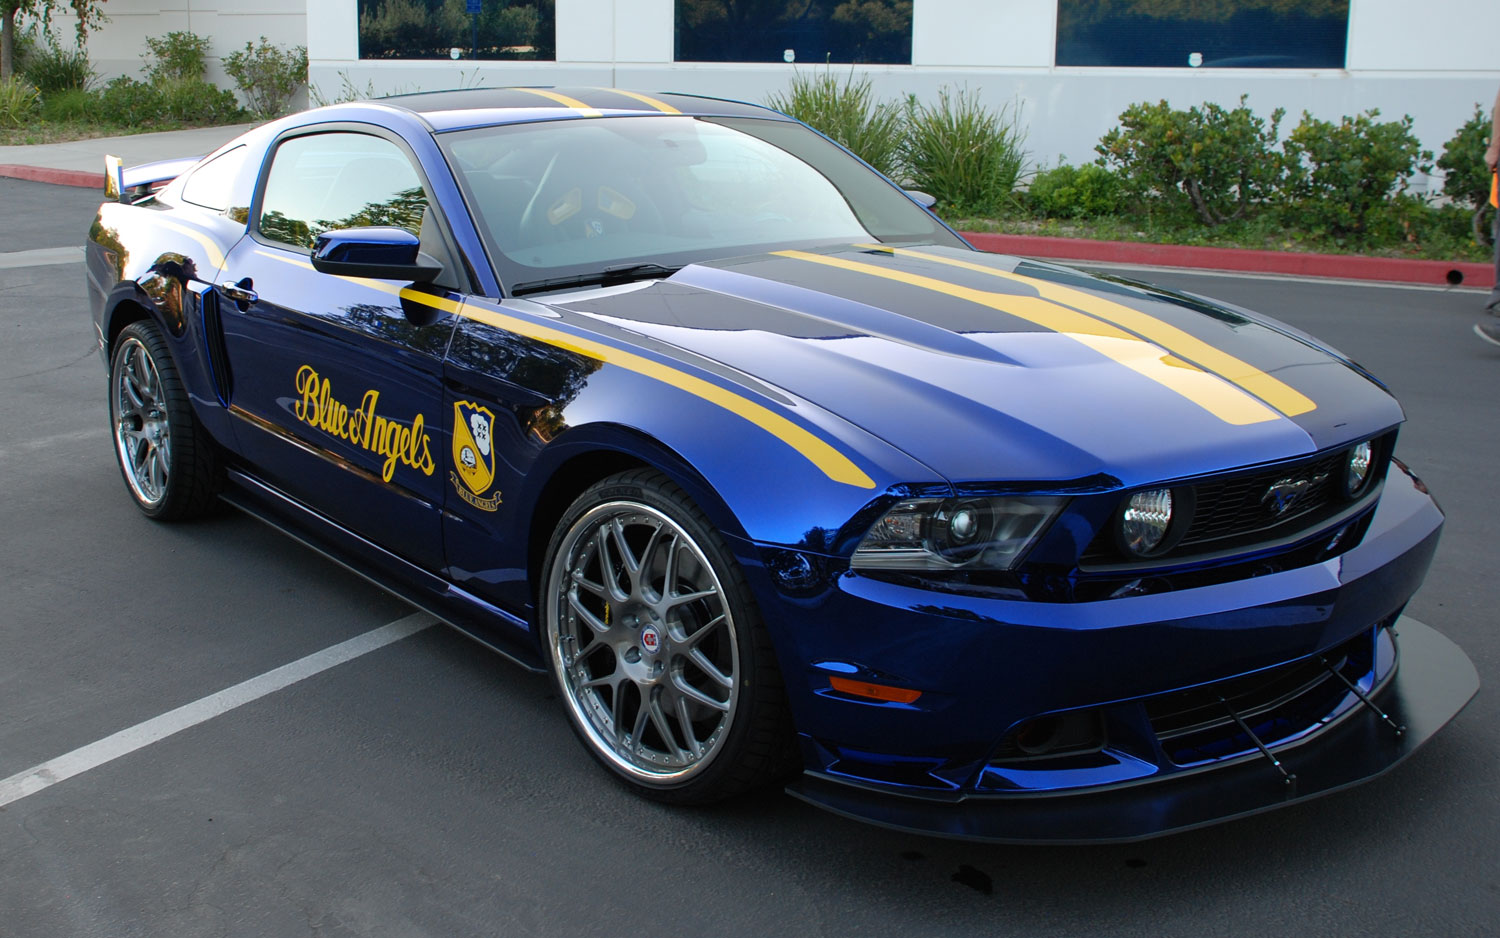 One Off Ford Blue Angels Mustang Gt Headed To Auction In Wisconsin